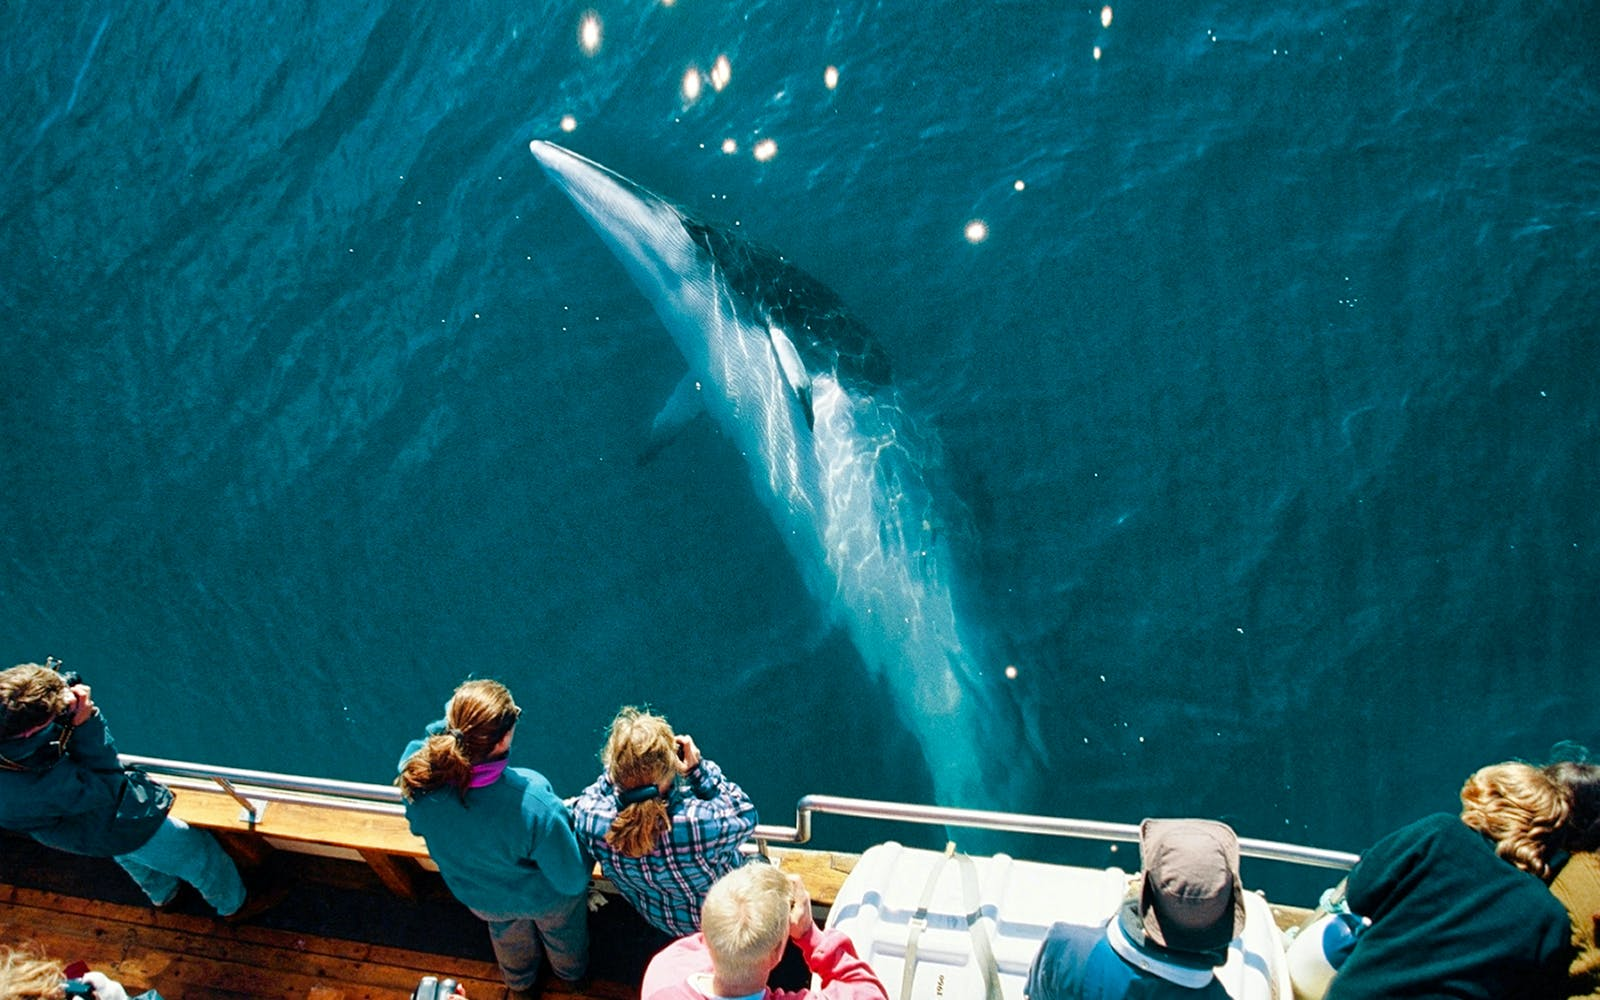 Full Day Tour of Golden Circle with Whale Watching Adventures